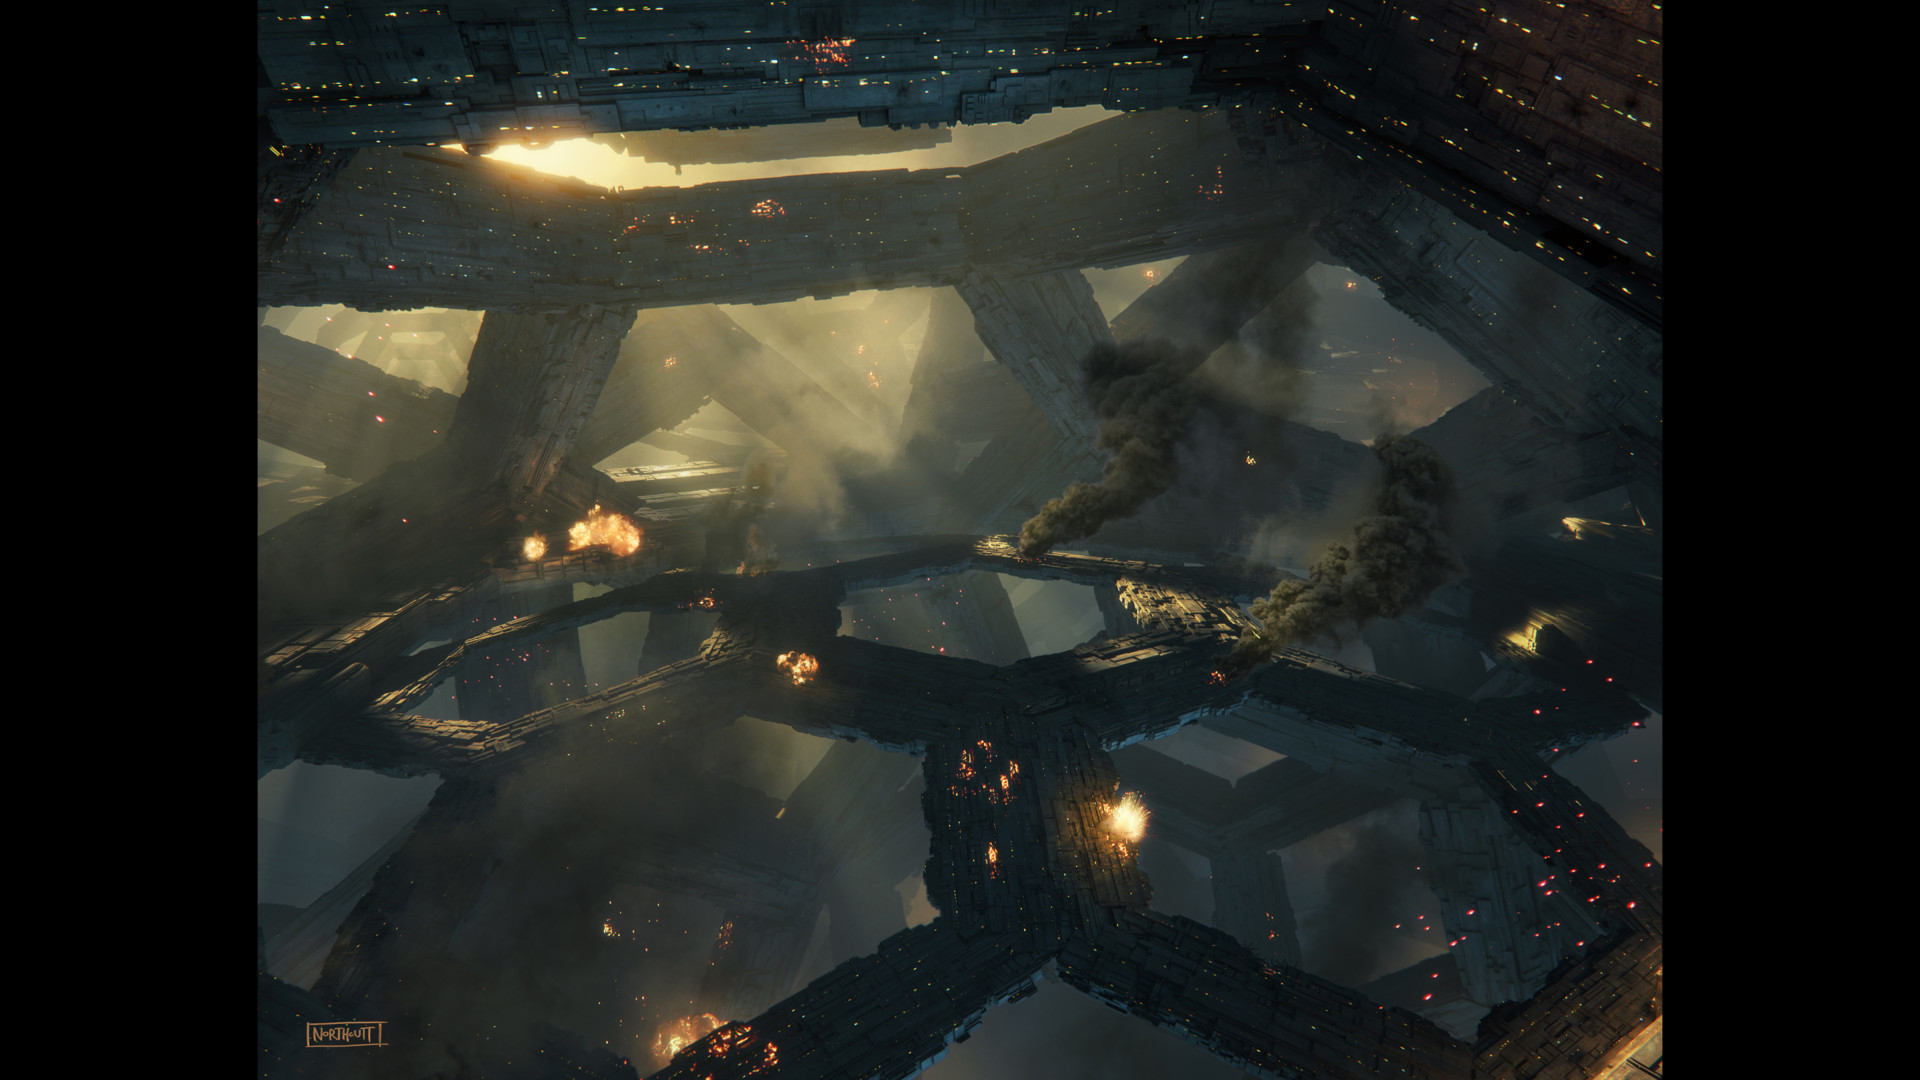 Transformers Fall Of Cybertron Wallpaper Hd Never Before Seen Concept Art From Transformers 3 And 4